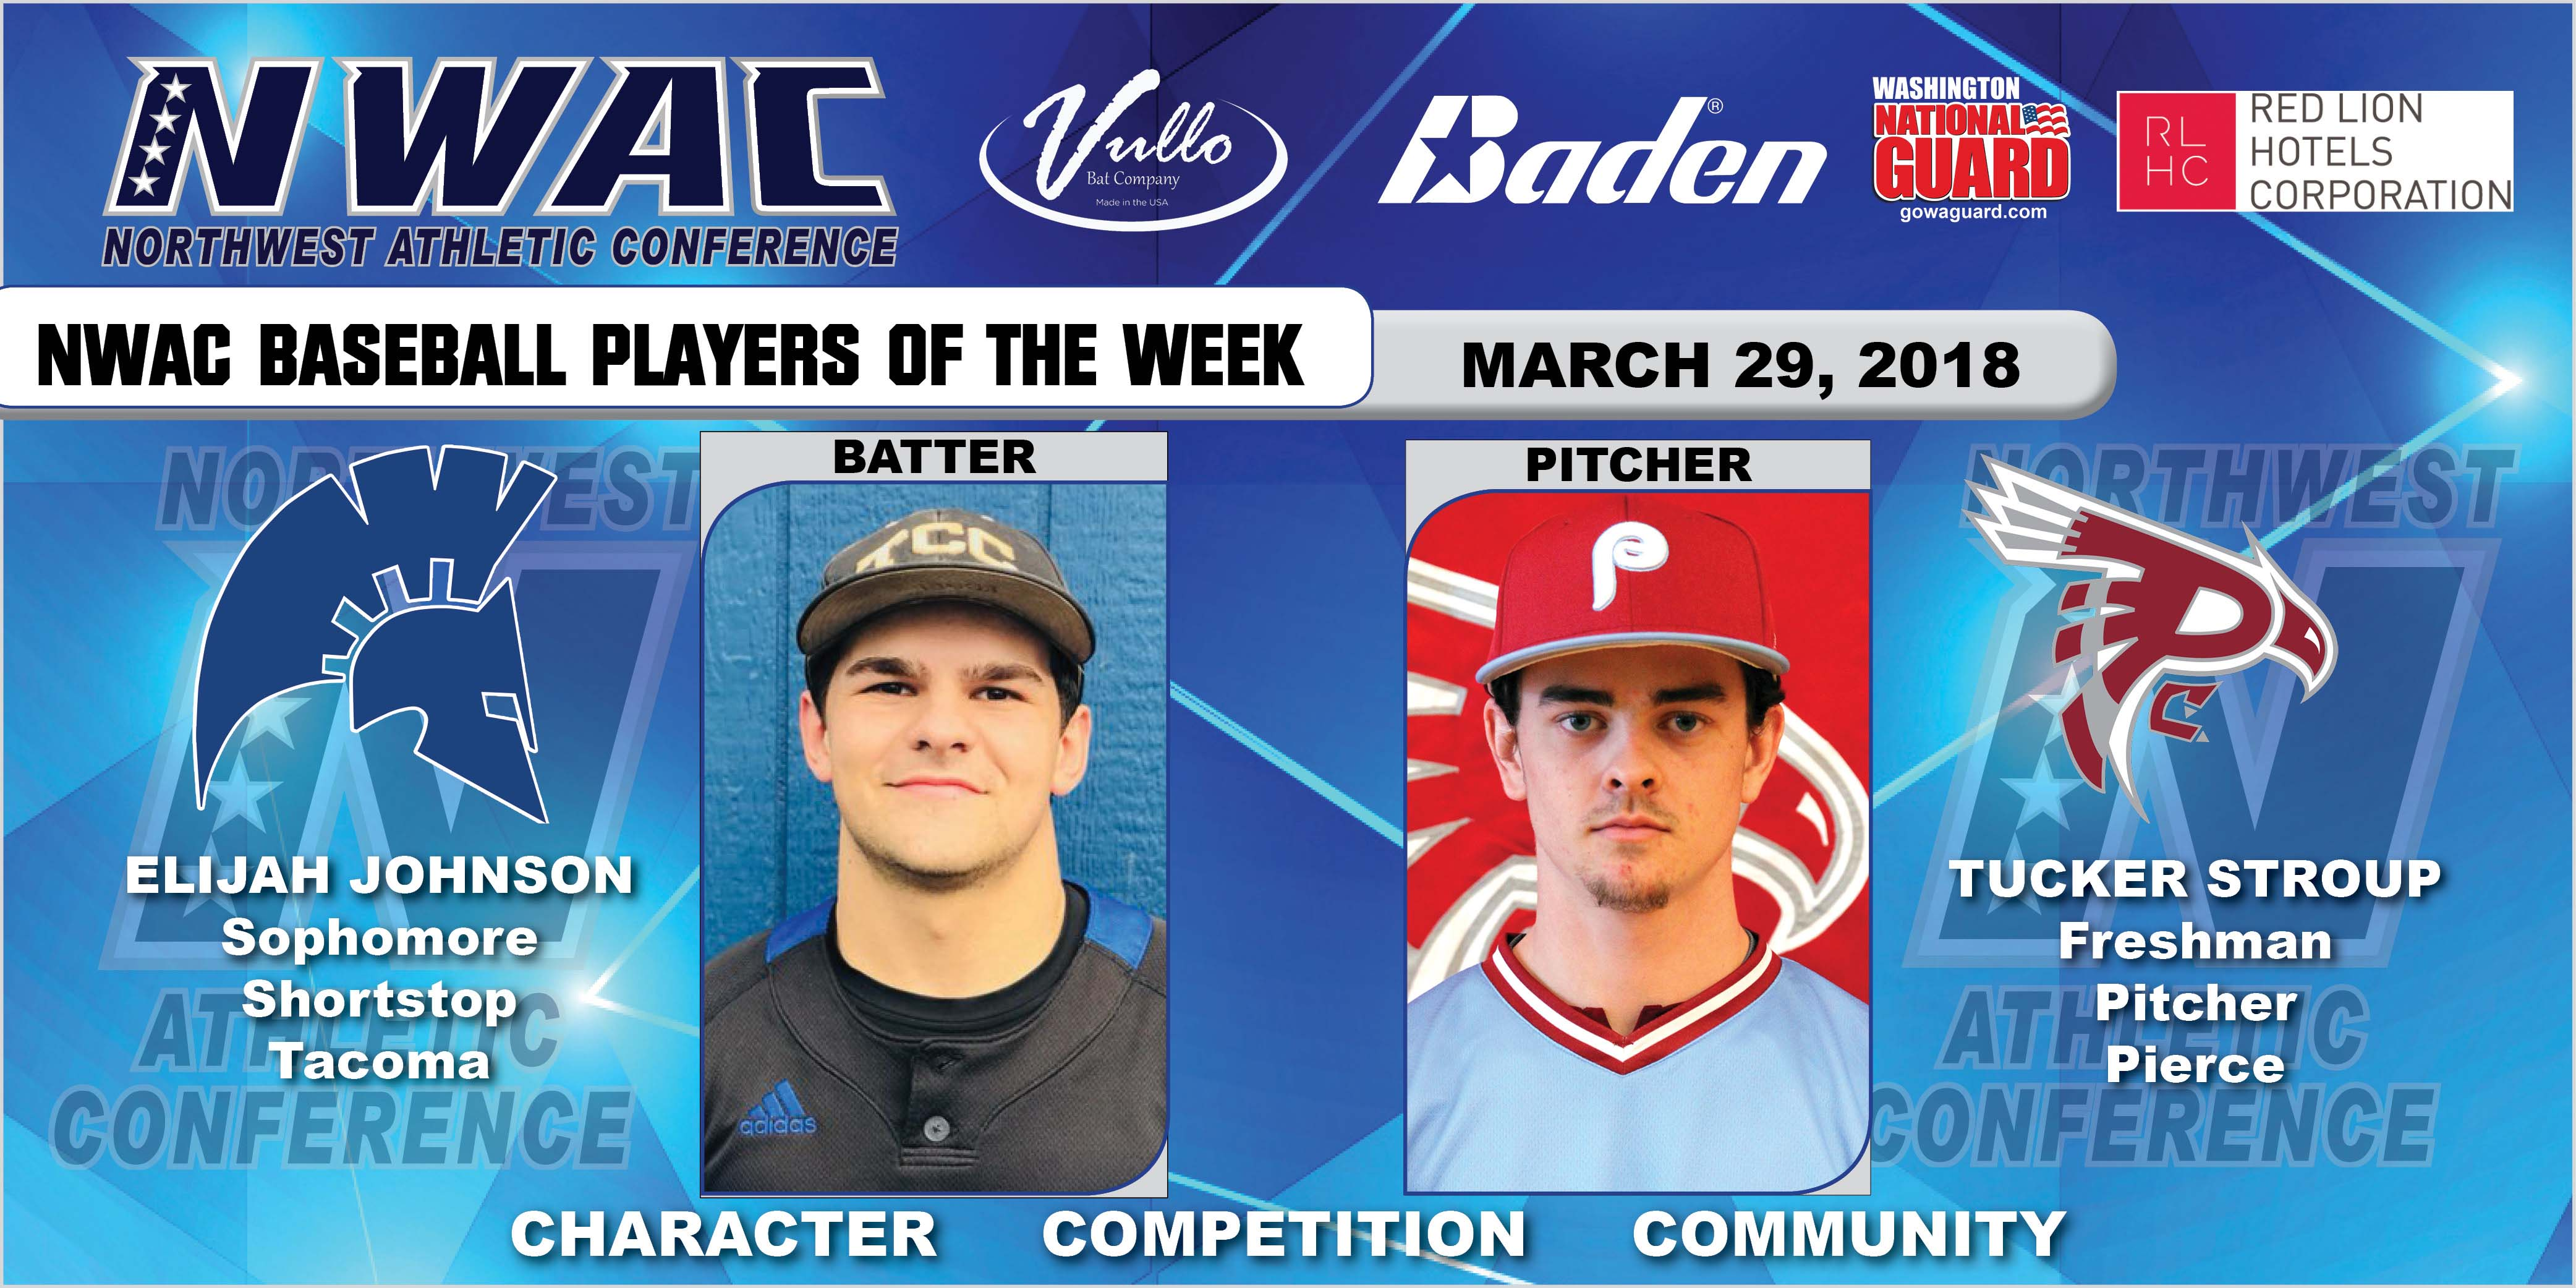 Elijah Johnson and Tucker Stroup players of the week collage